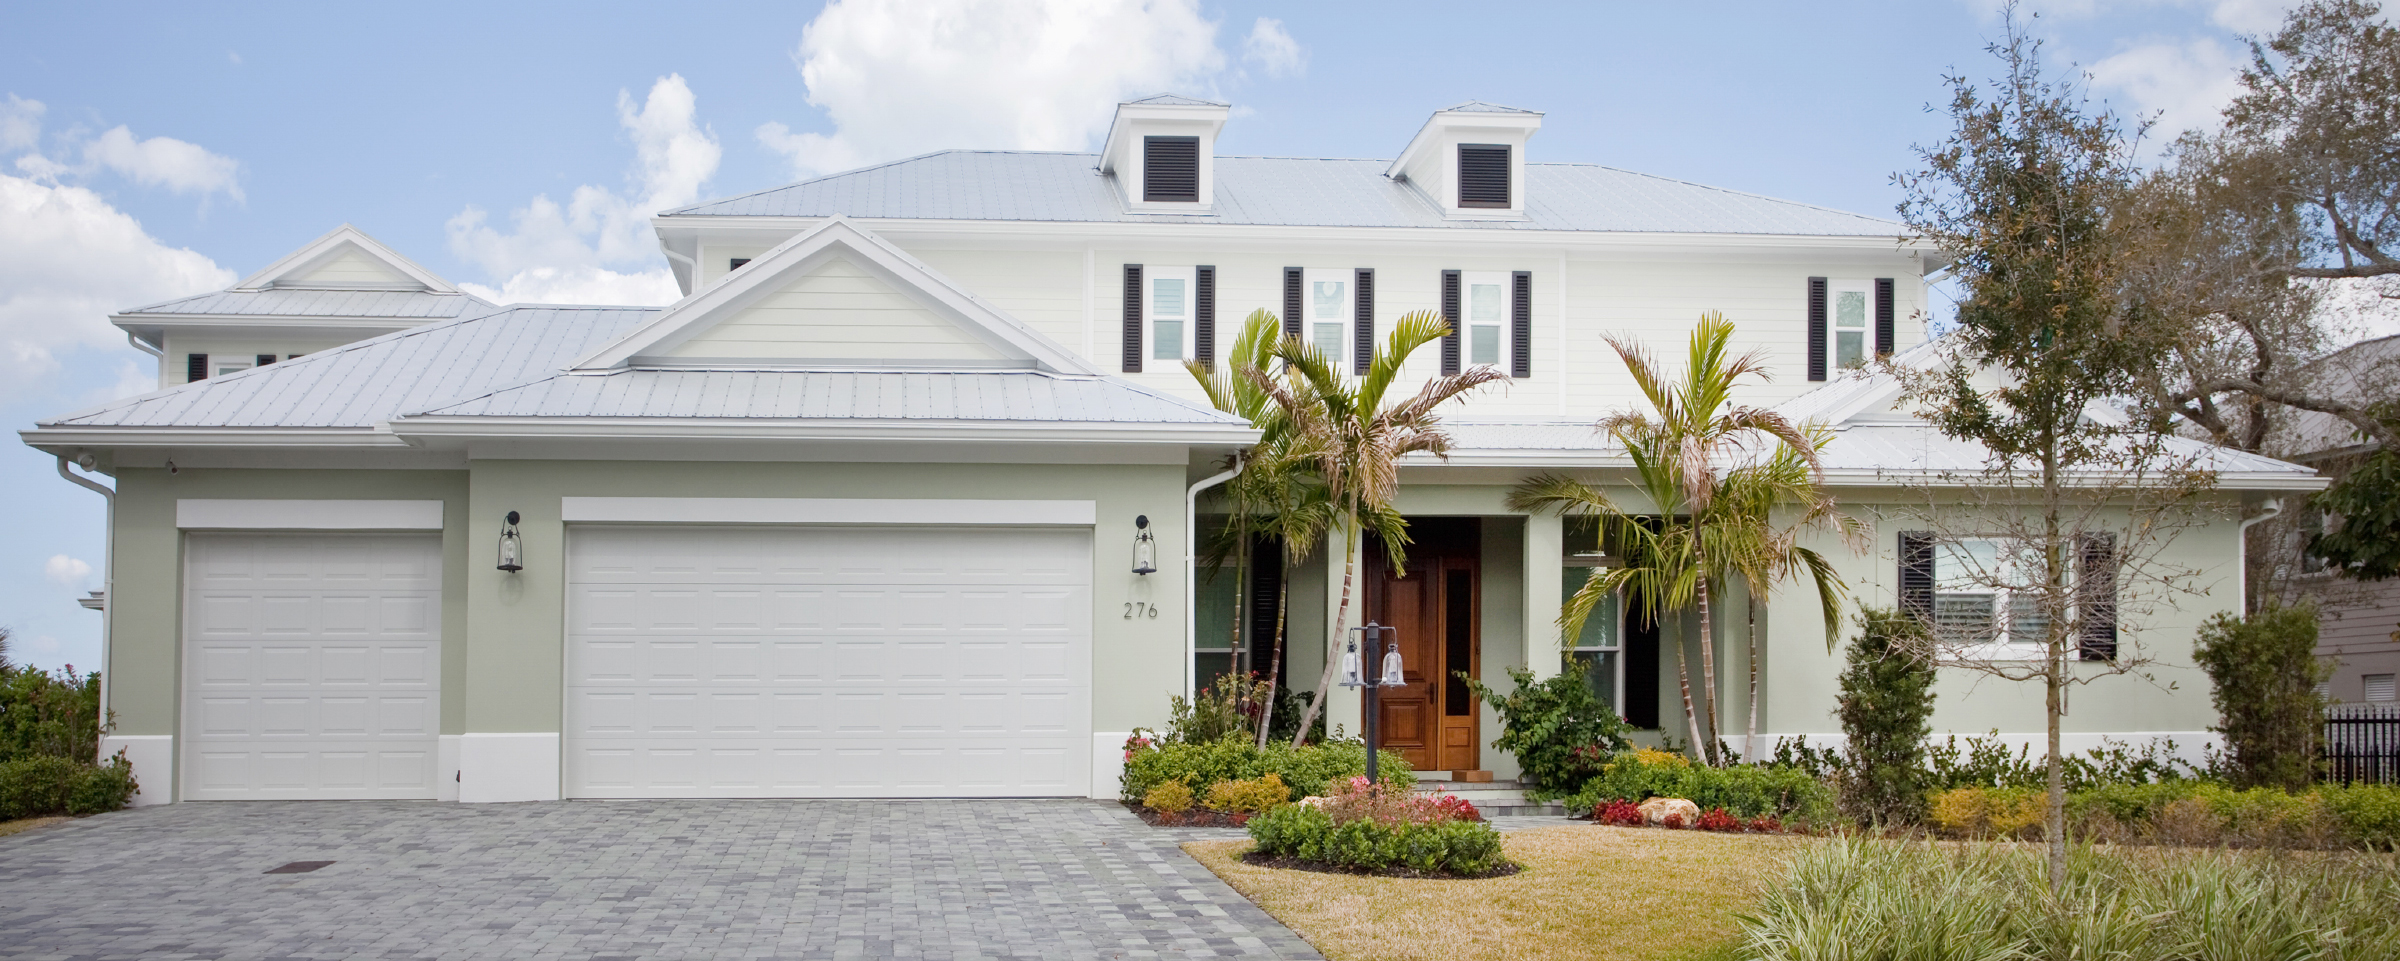 vero beach builder, vero beach contractor, randy hines, randy hines construction